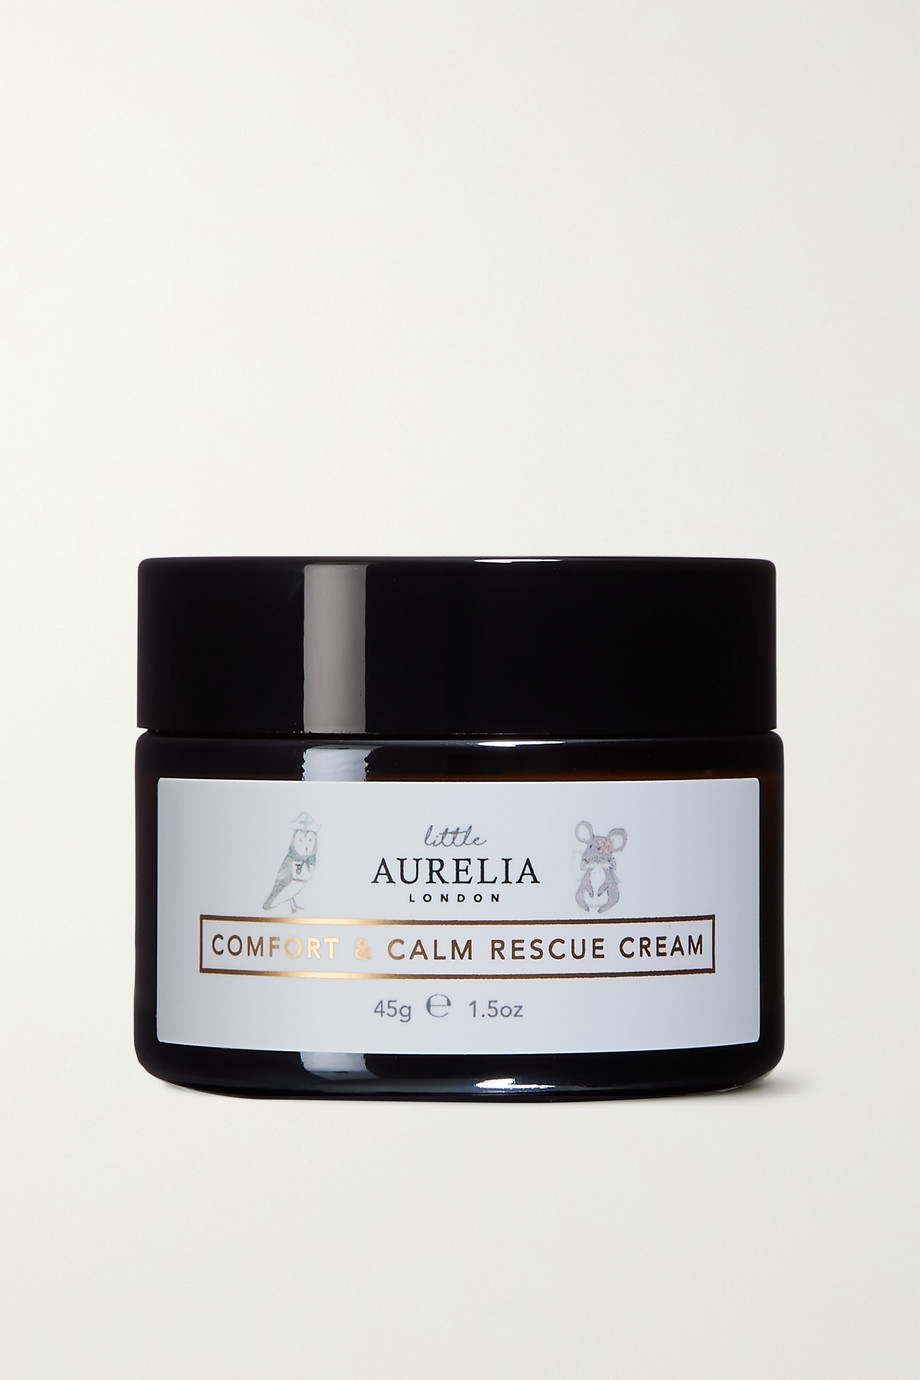 Aurelia Probiotic Skincare Little Aurelia Comfort & Calm Rescue Cream, 50g